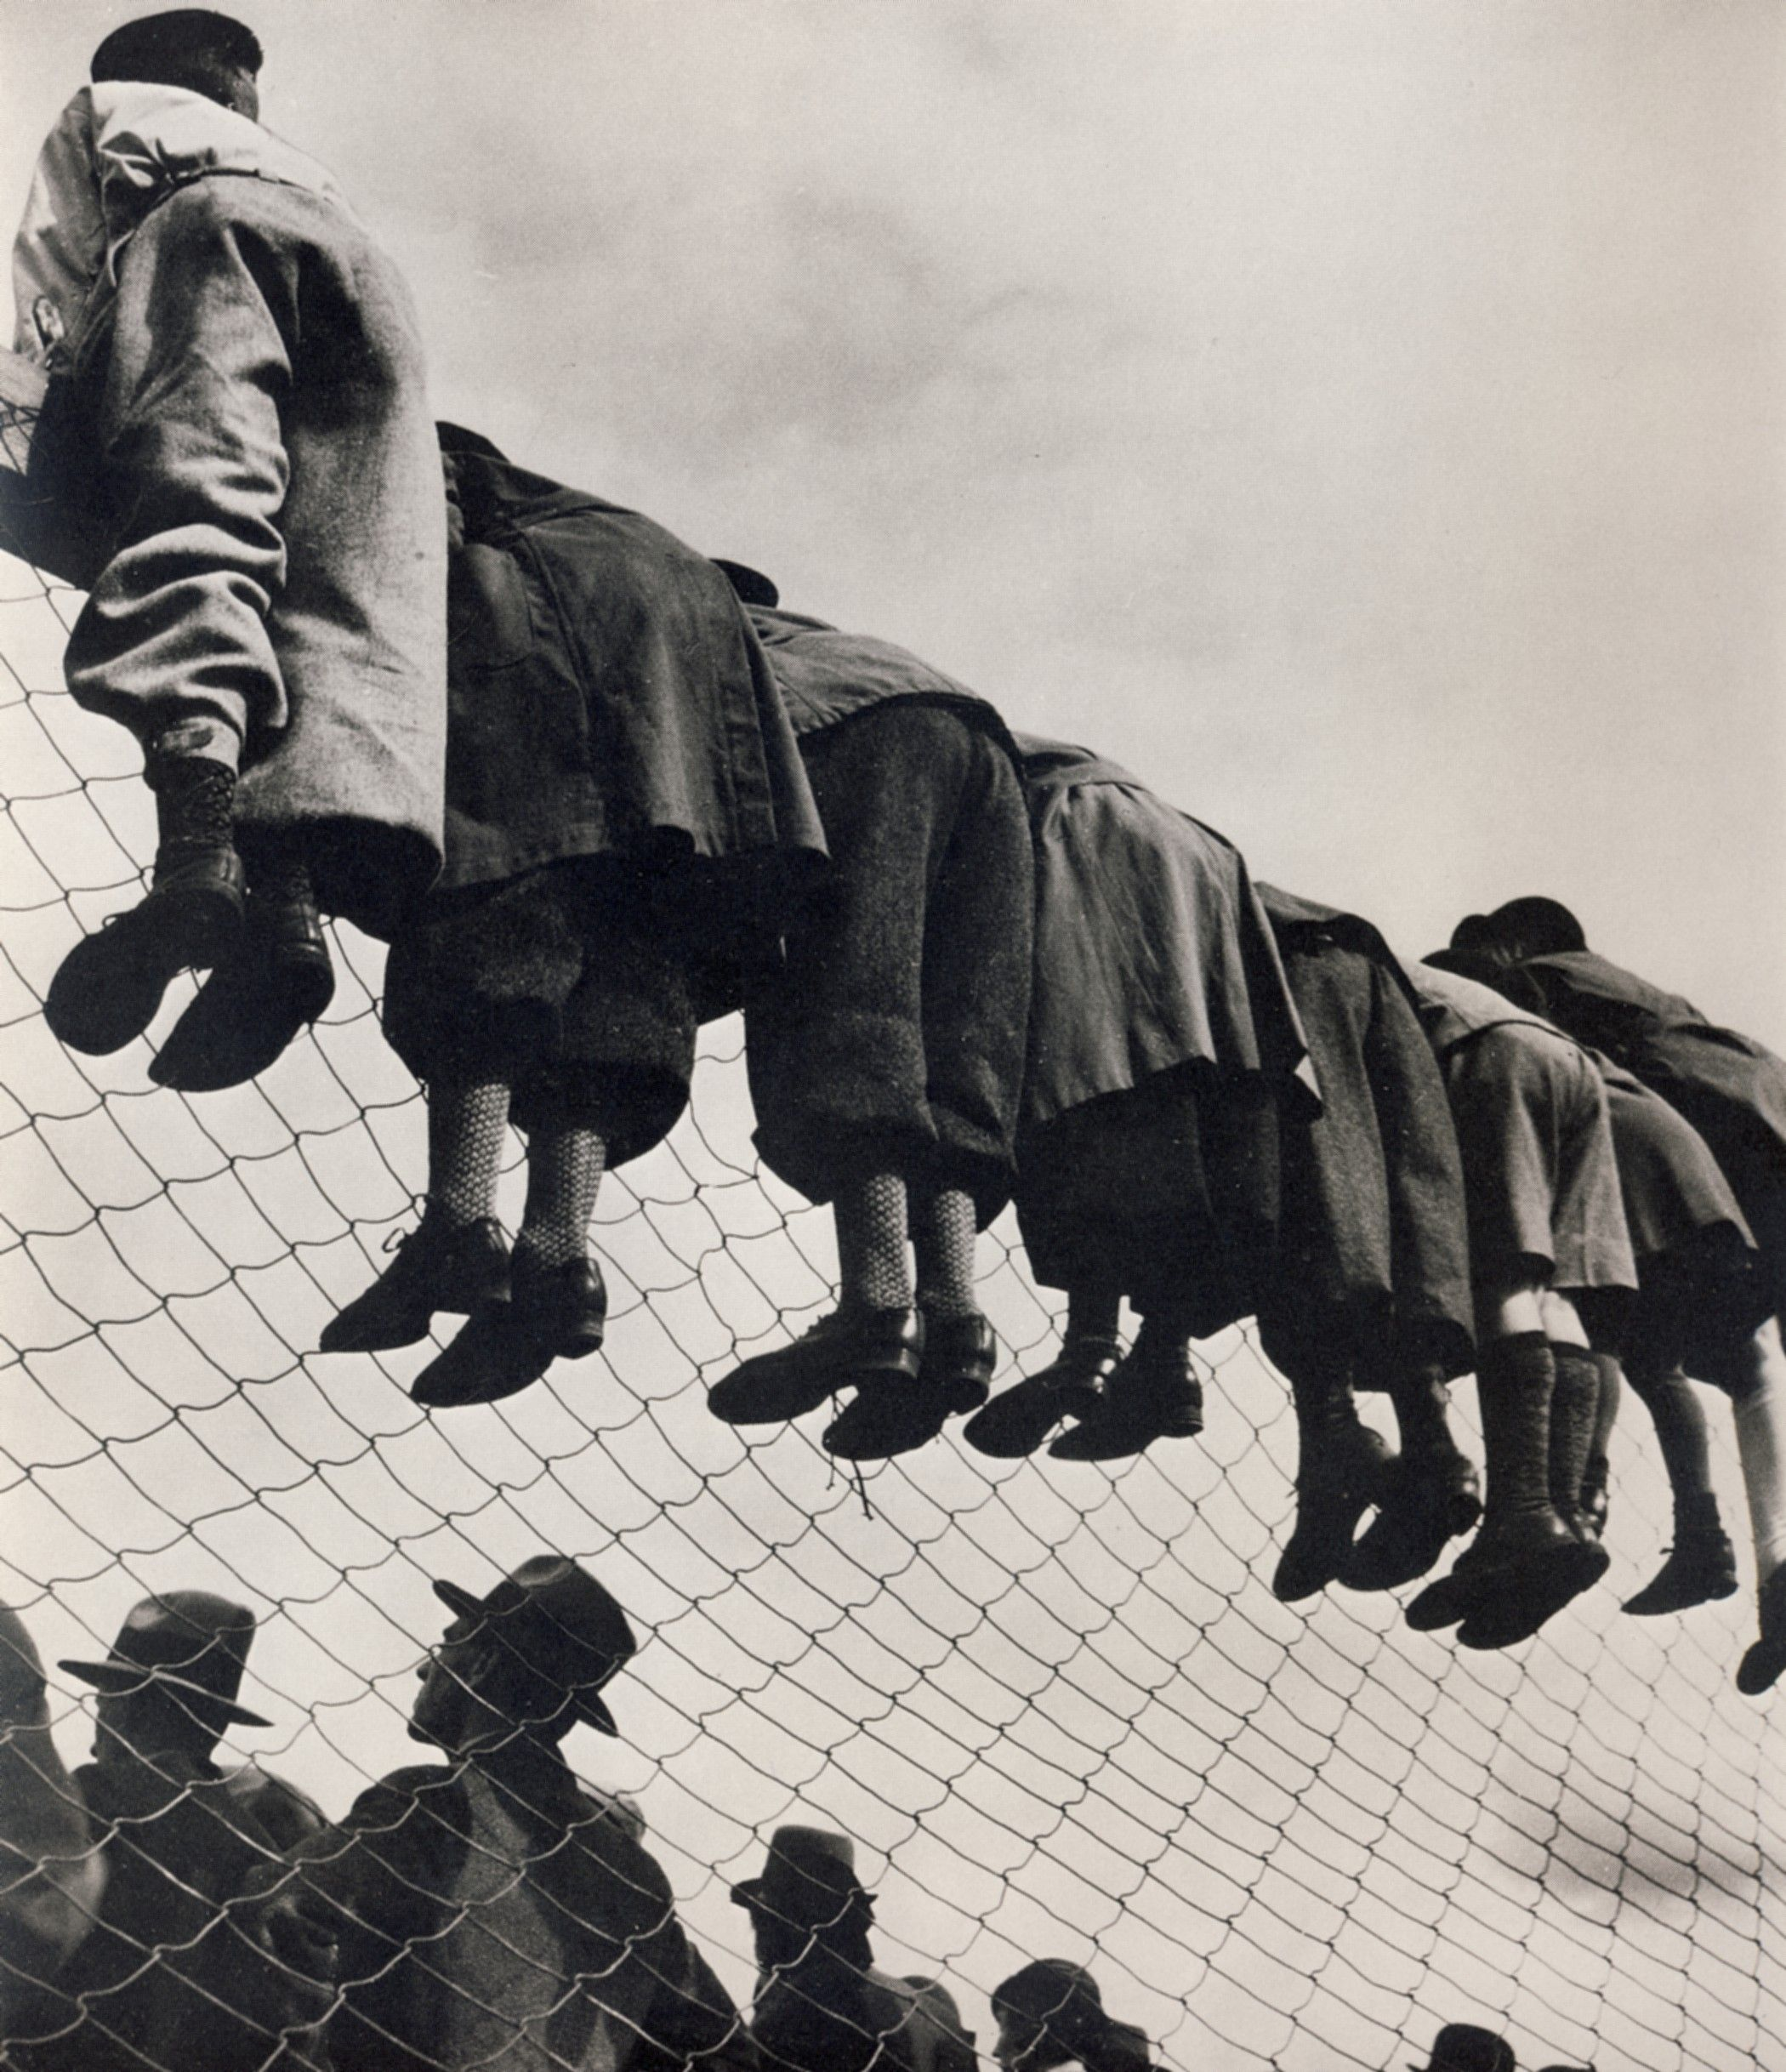 At the dog show, youths hanging on the fence trying to get a glimpse, Stockholm, 1934, By Emil Heilborn.